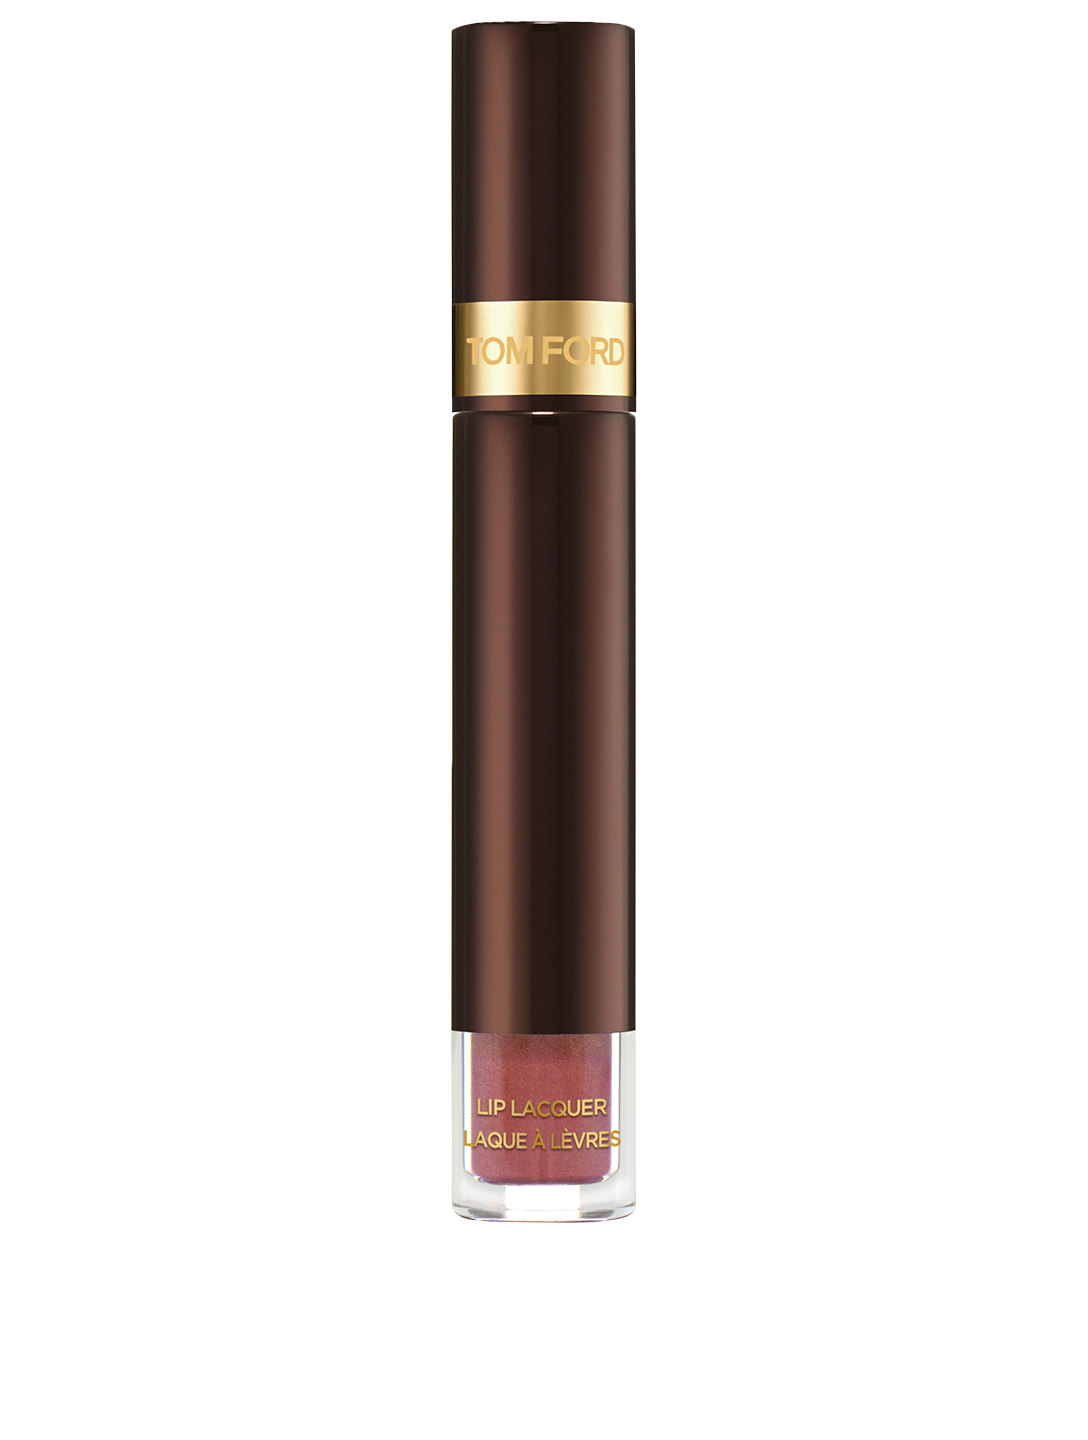 TOM FORD Lip Lacquer Beauty Pink